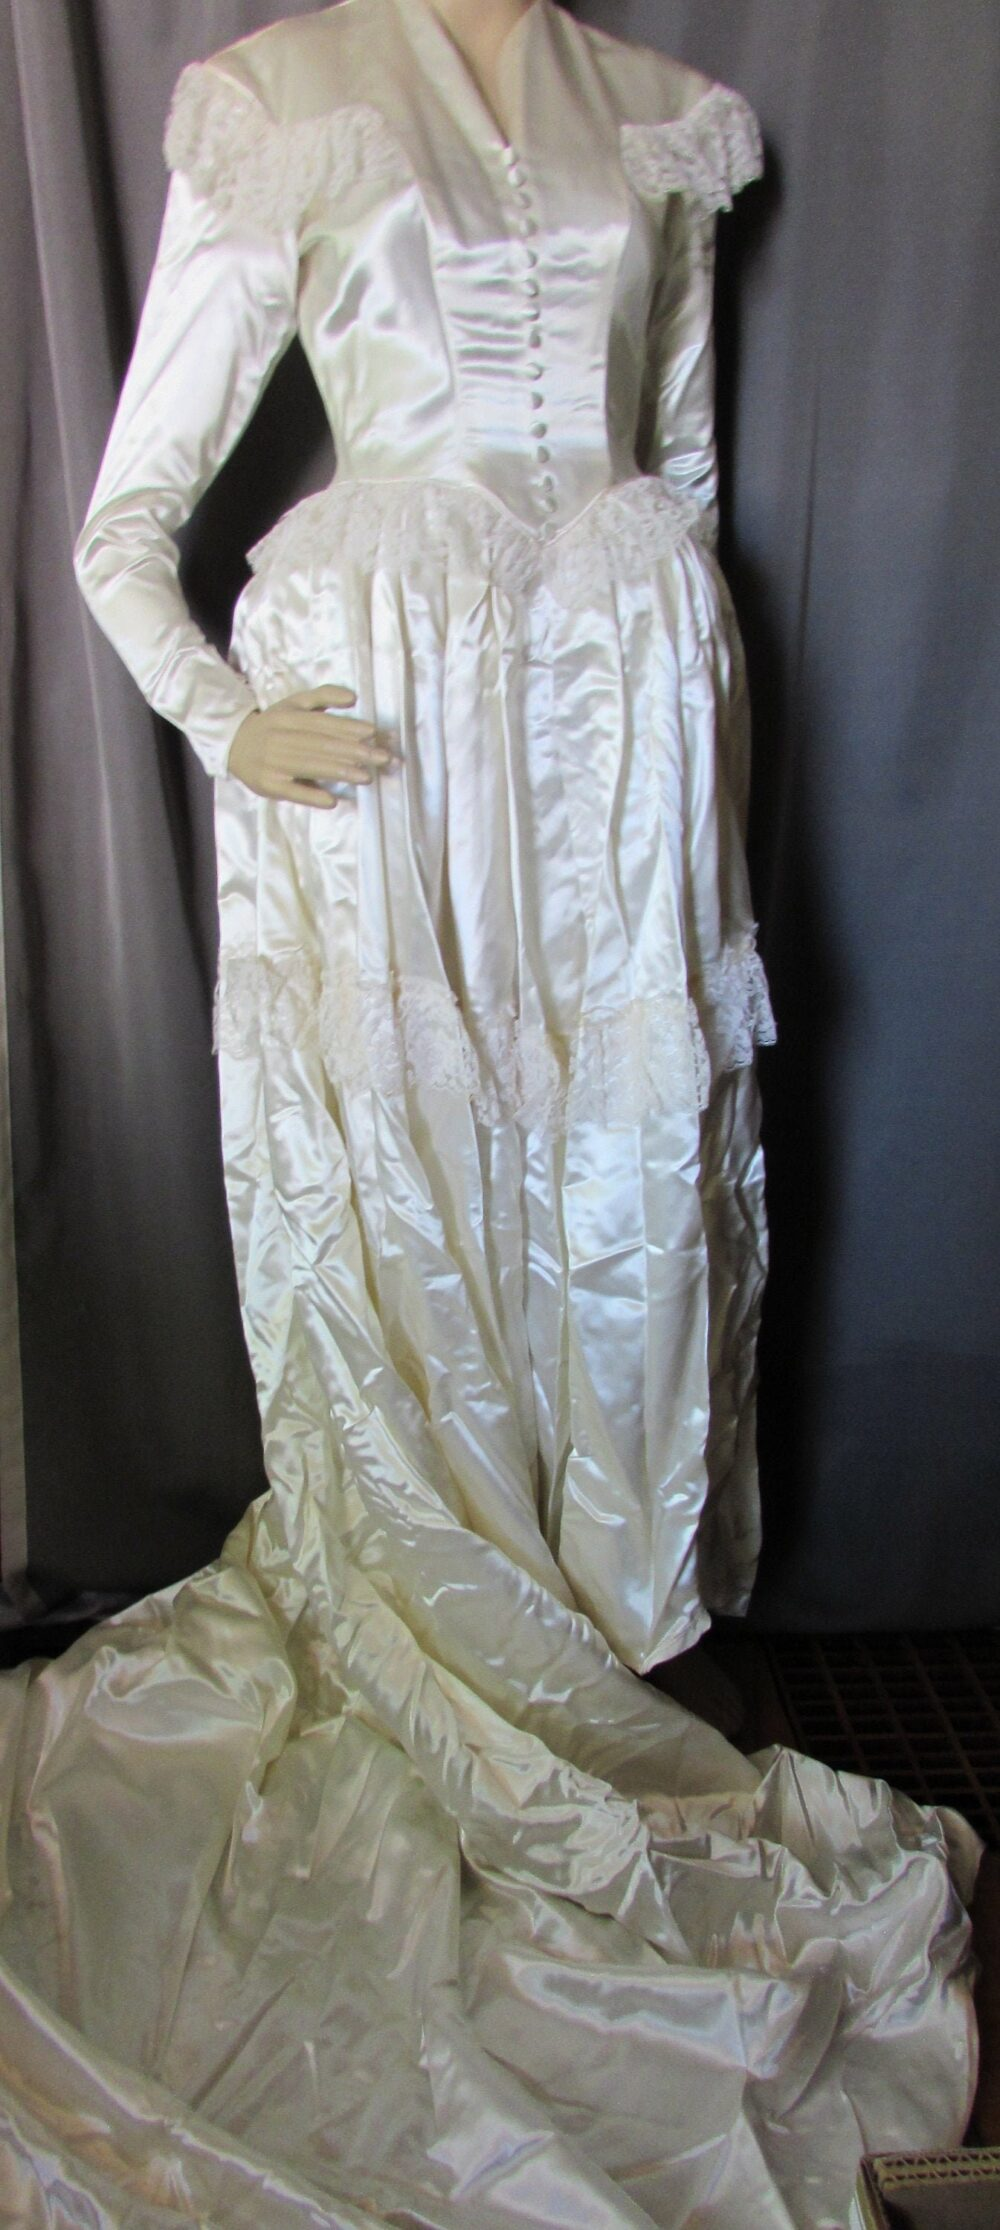 Wedding Gown Ivory Tone Satin & Lace 1940 1950 Style Long Train Corset Buttons Milady Bridal Shoppe Pannier Hoop Vintage Fashions